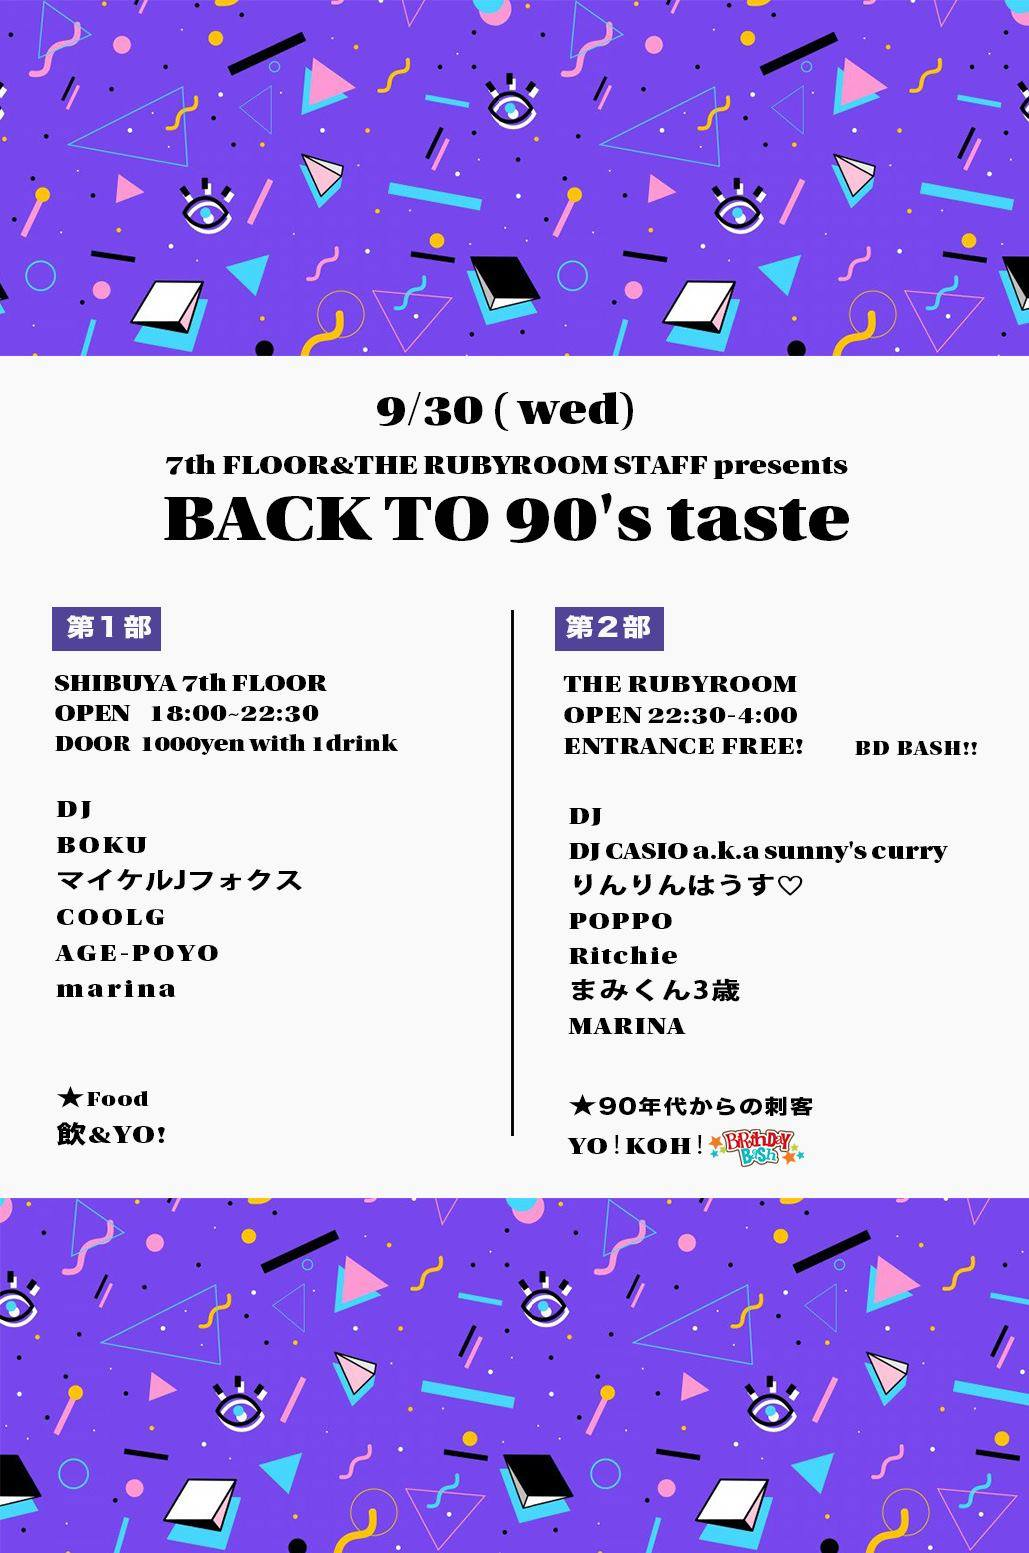 7th FLOOR&THE RUBYROOM STAFF presents『BACK TO 90's taste』